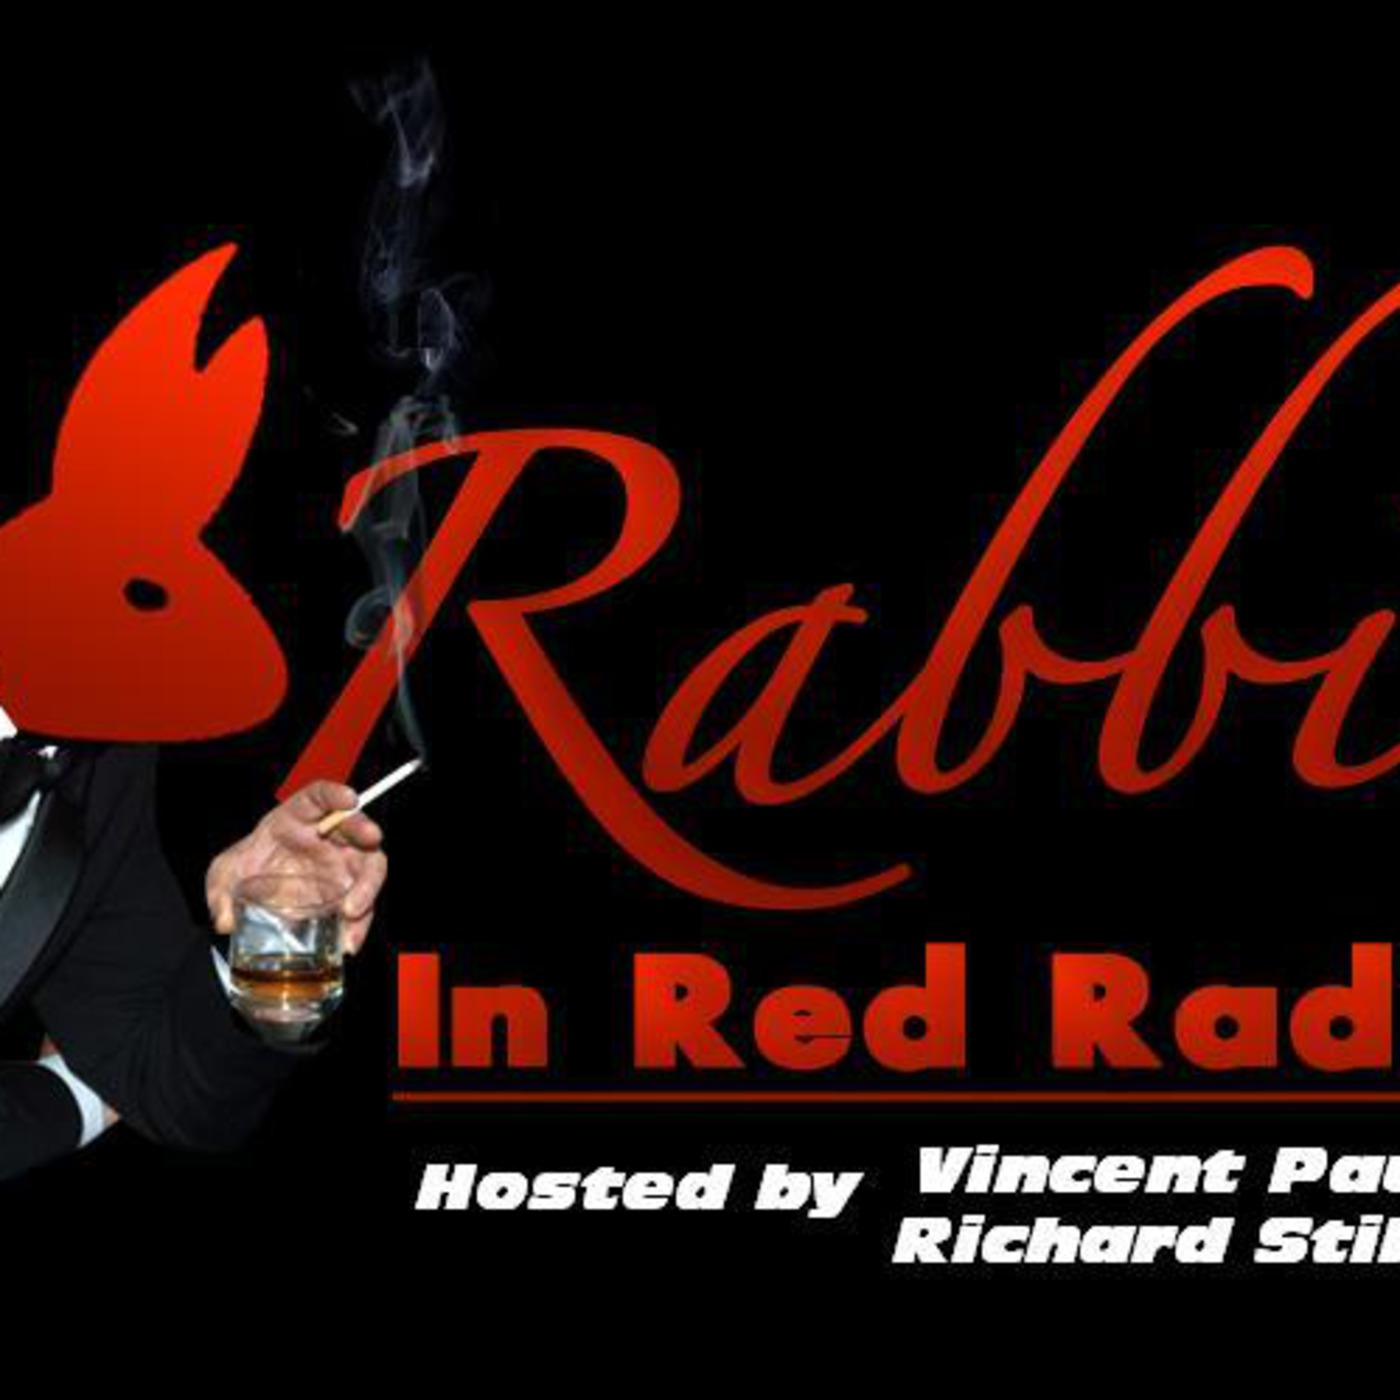 Rabbit In Red Radio (second page)